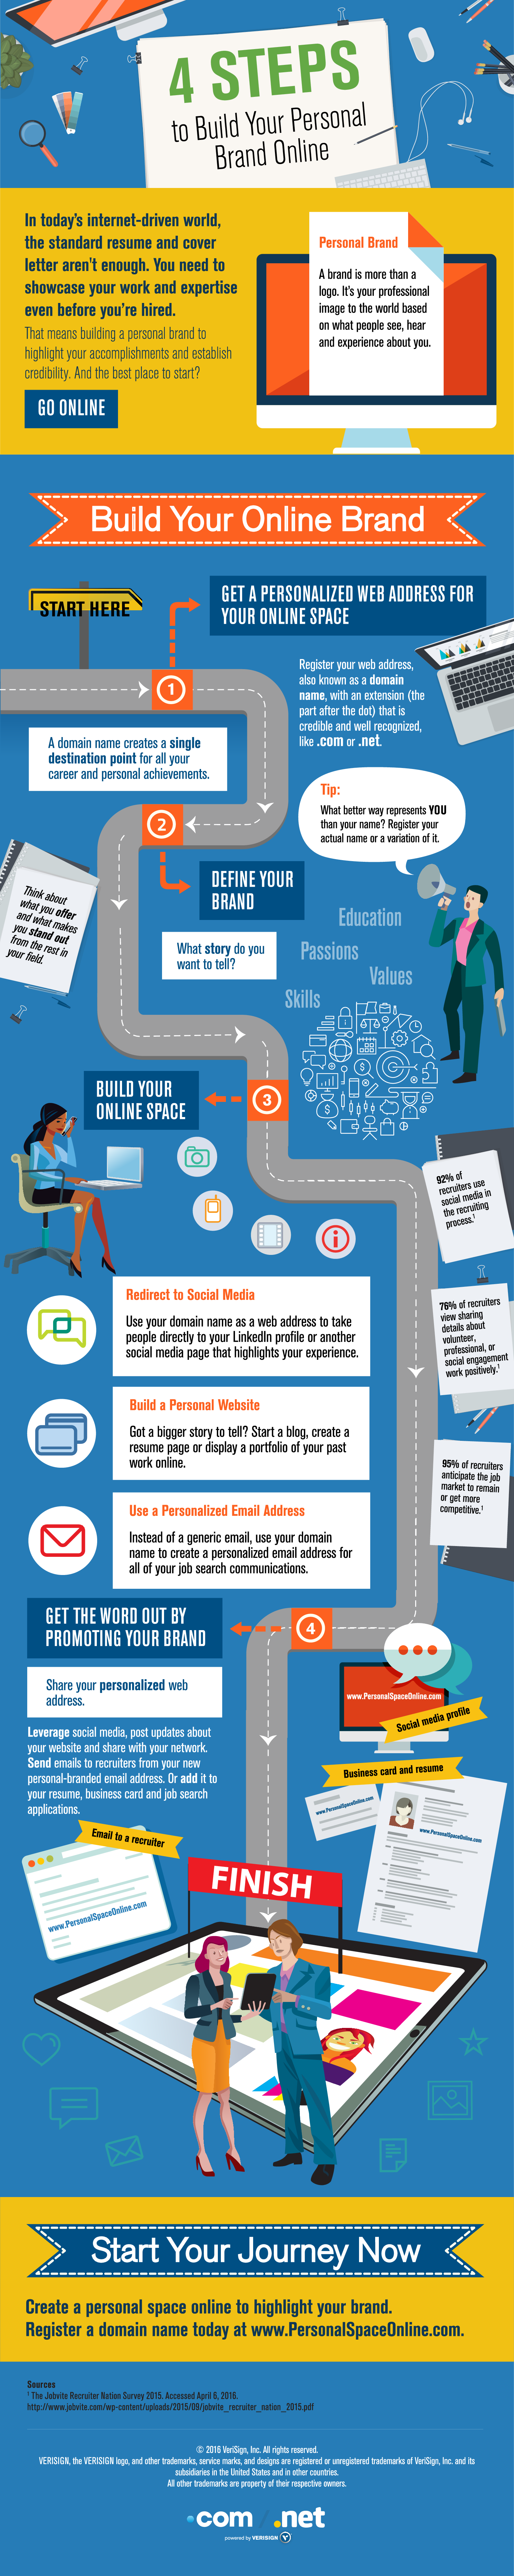 Infographic: 4 Steps to Build Your Personal Brand Online